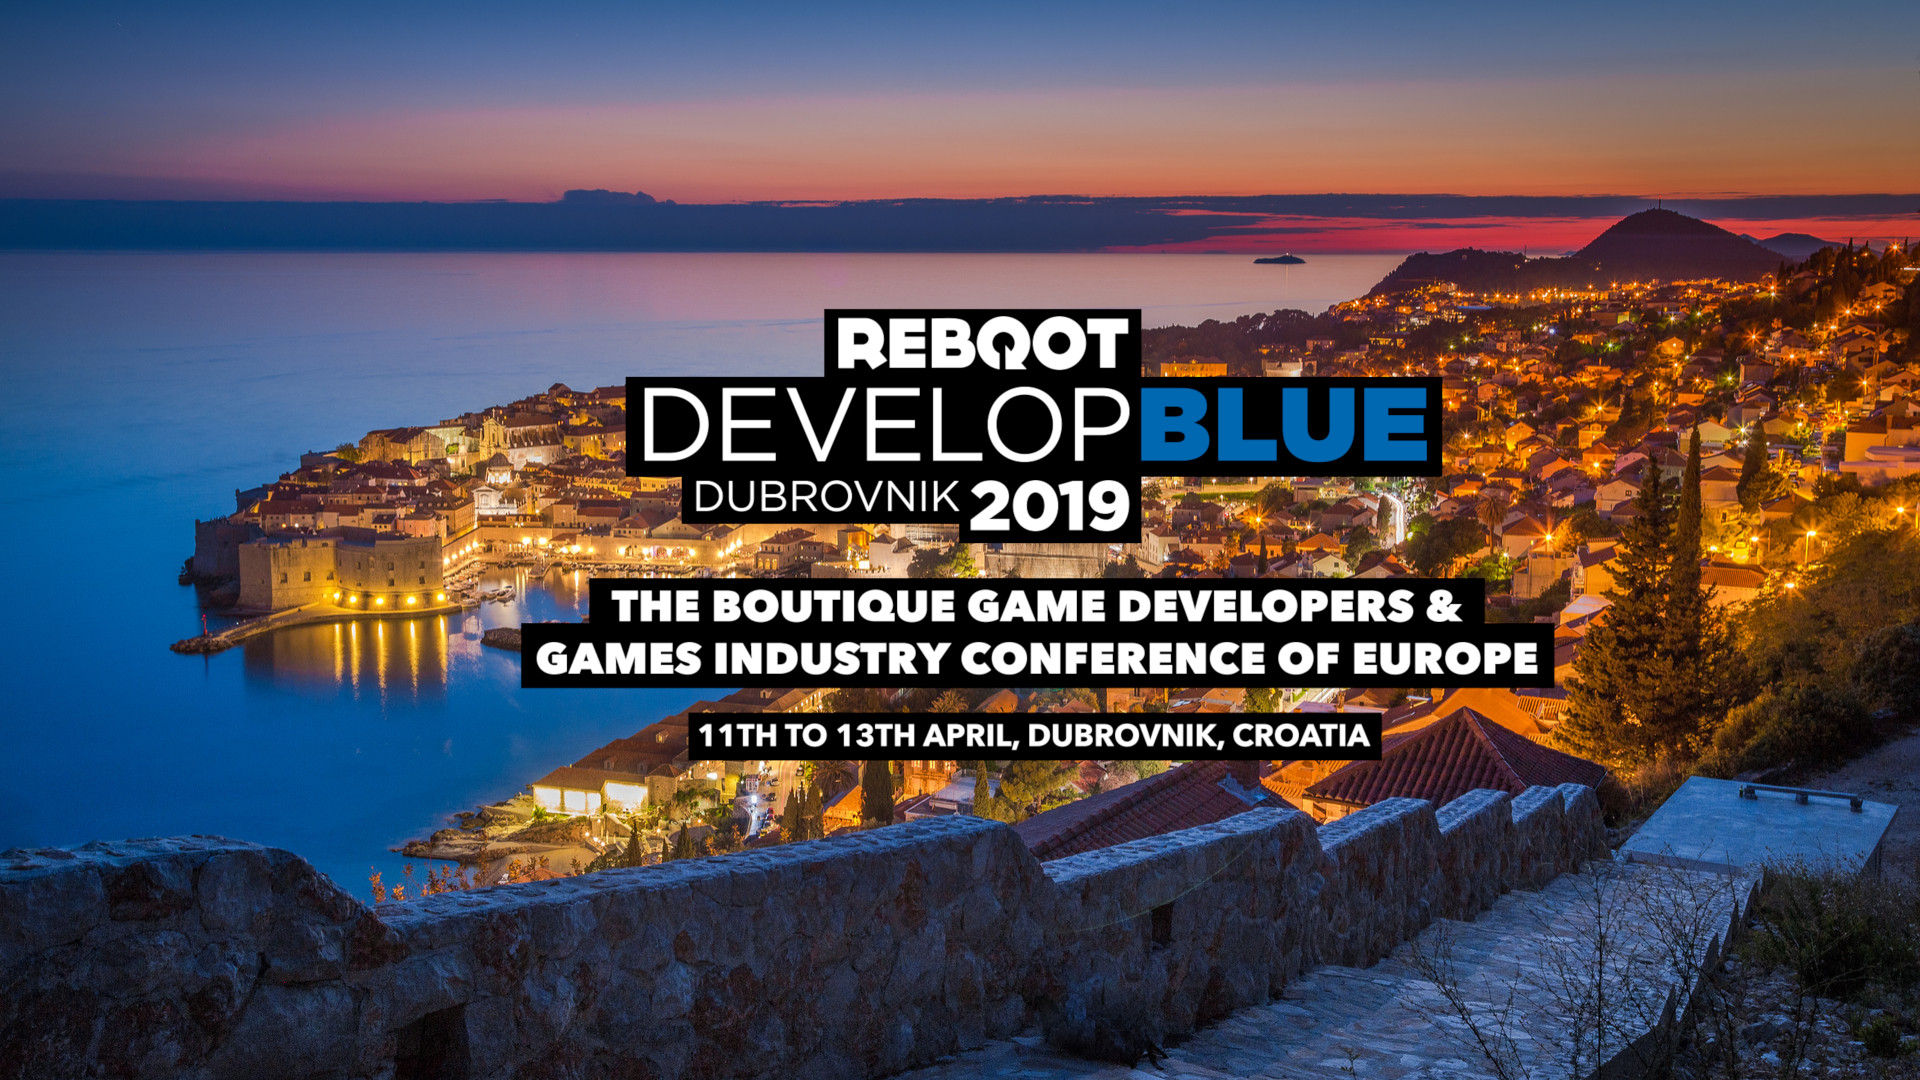 Reboot Develop Blue 2019 games industry conference ready to leave the biggest global footprint yet, becomes again the site of annual EGDF spring assembly